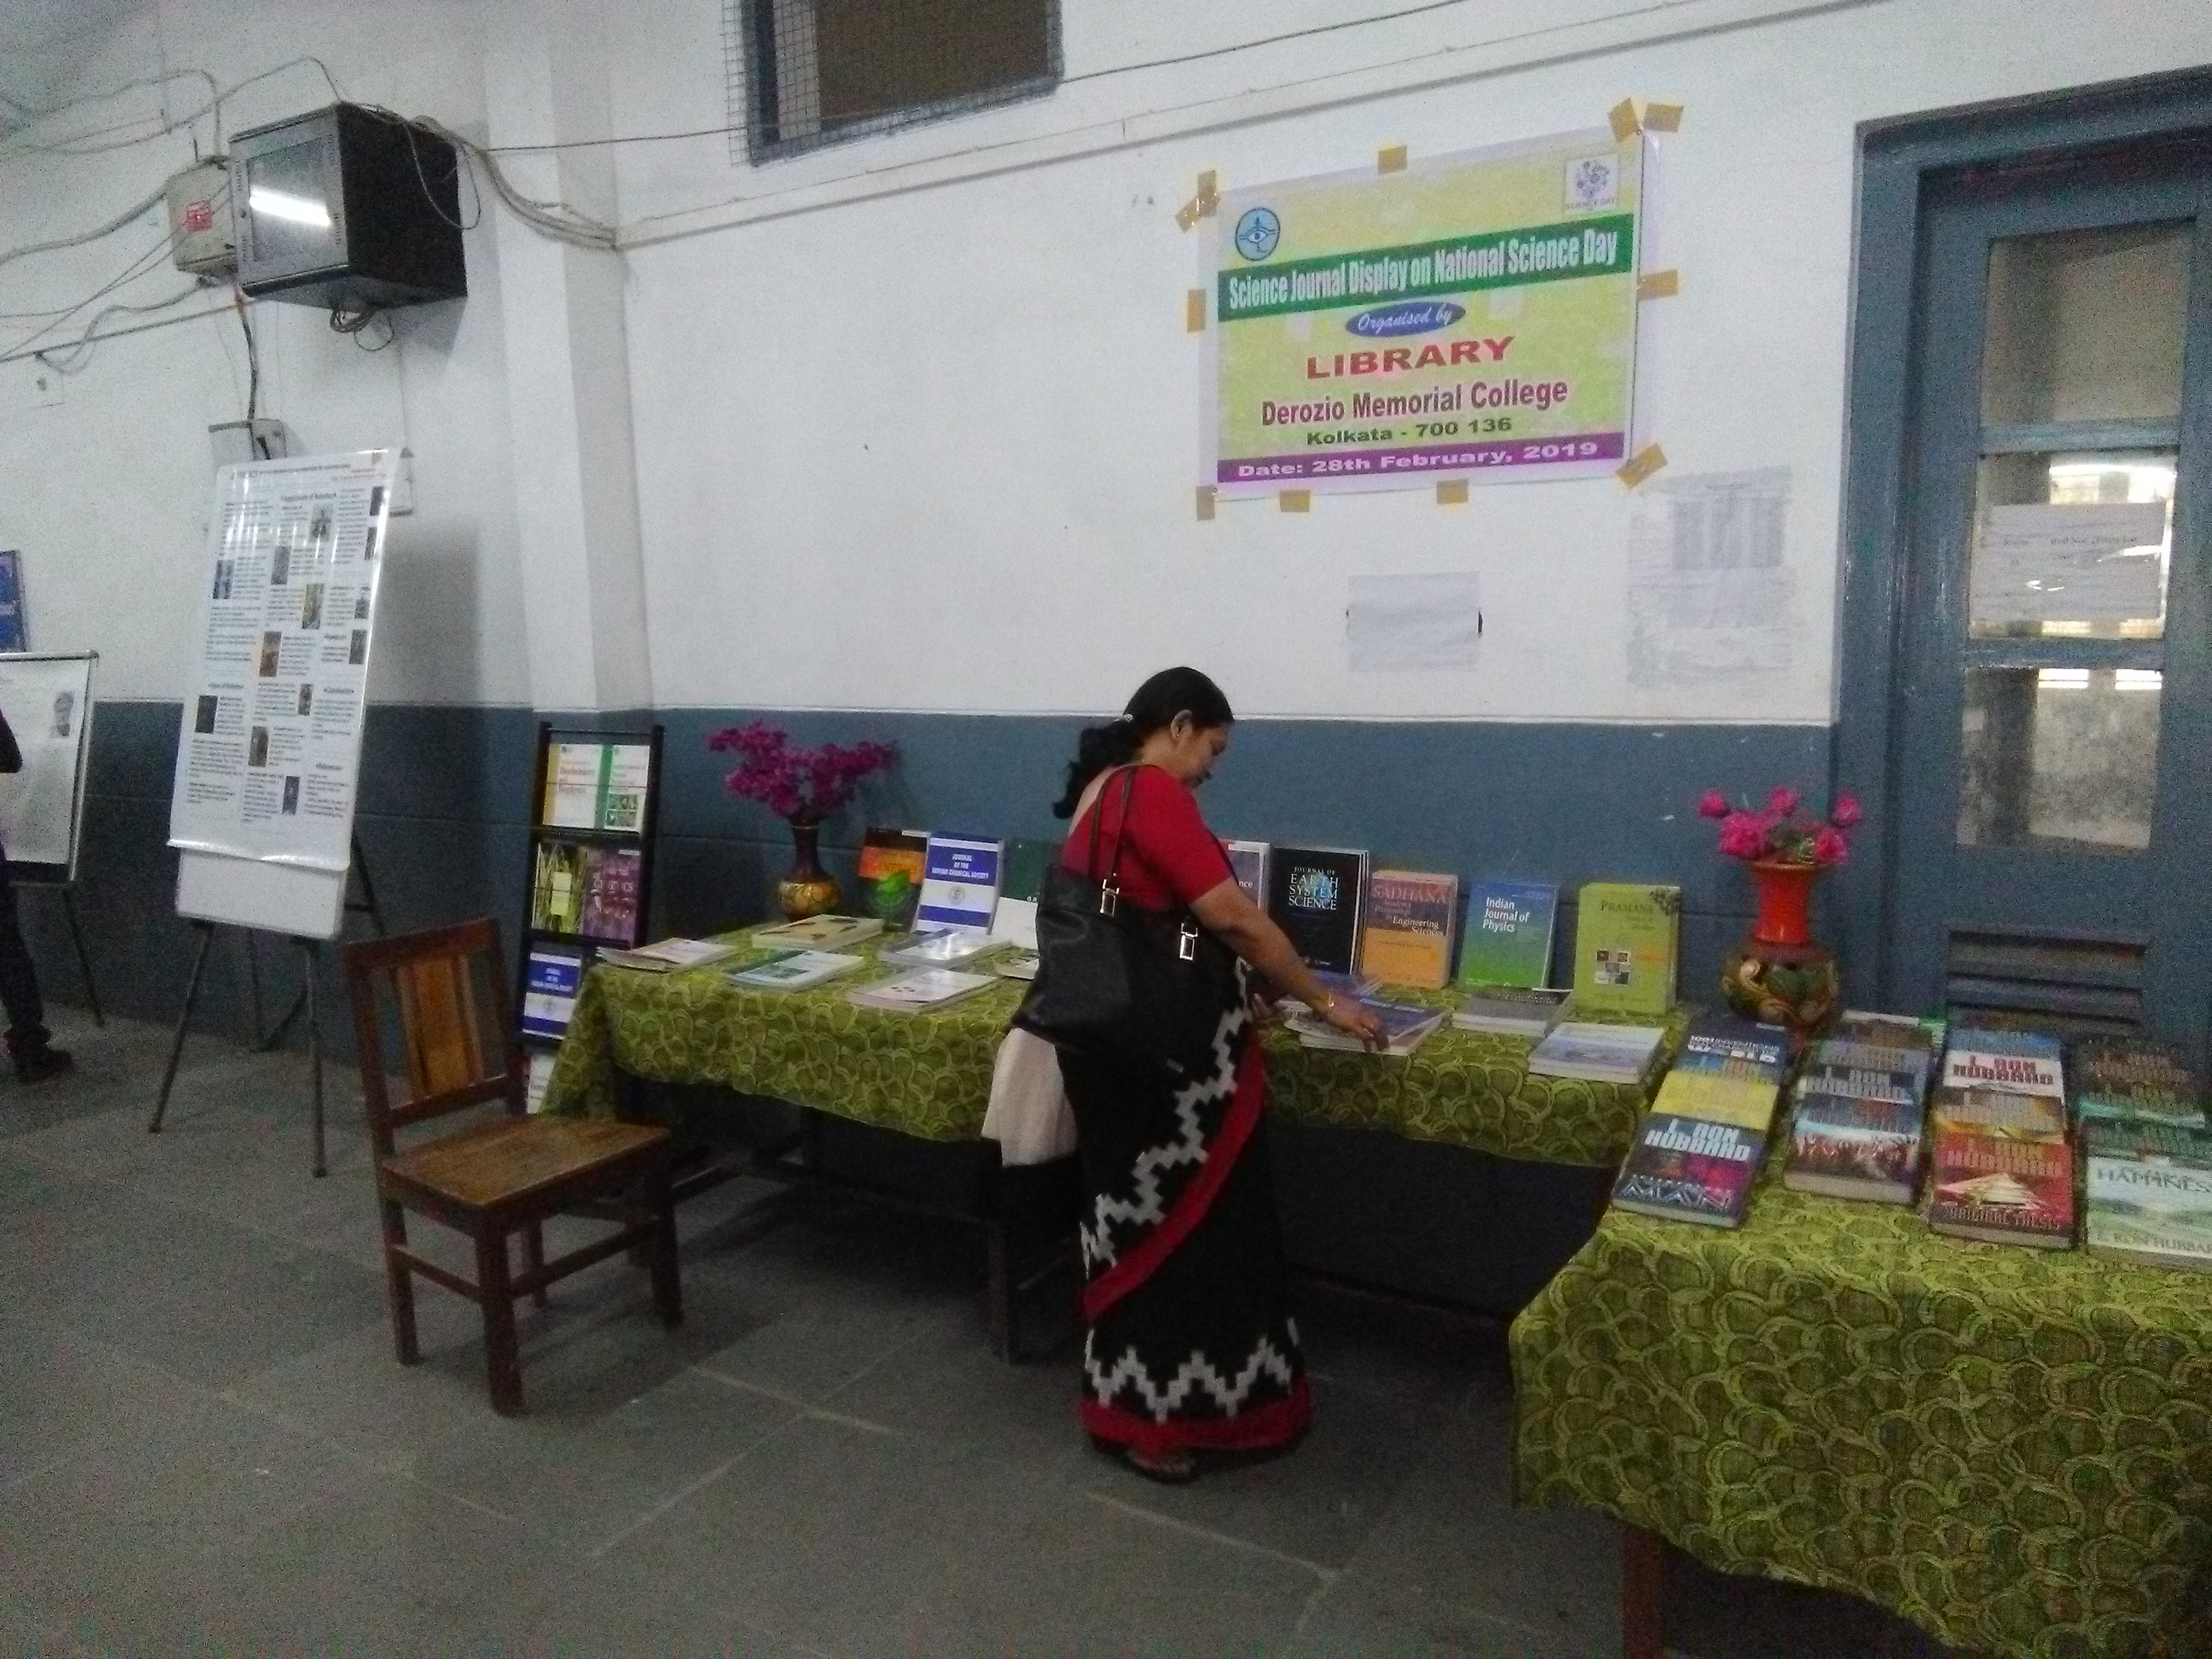 Science Books and Journal Display 2019